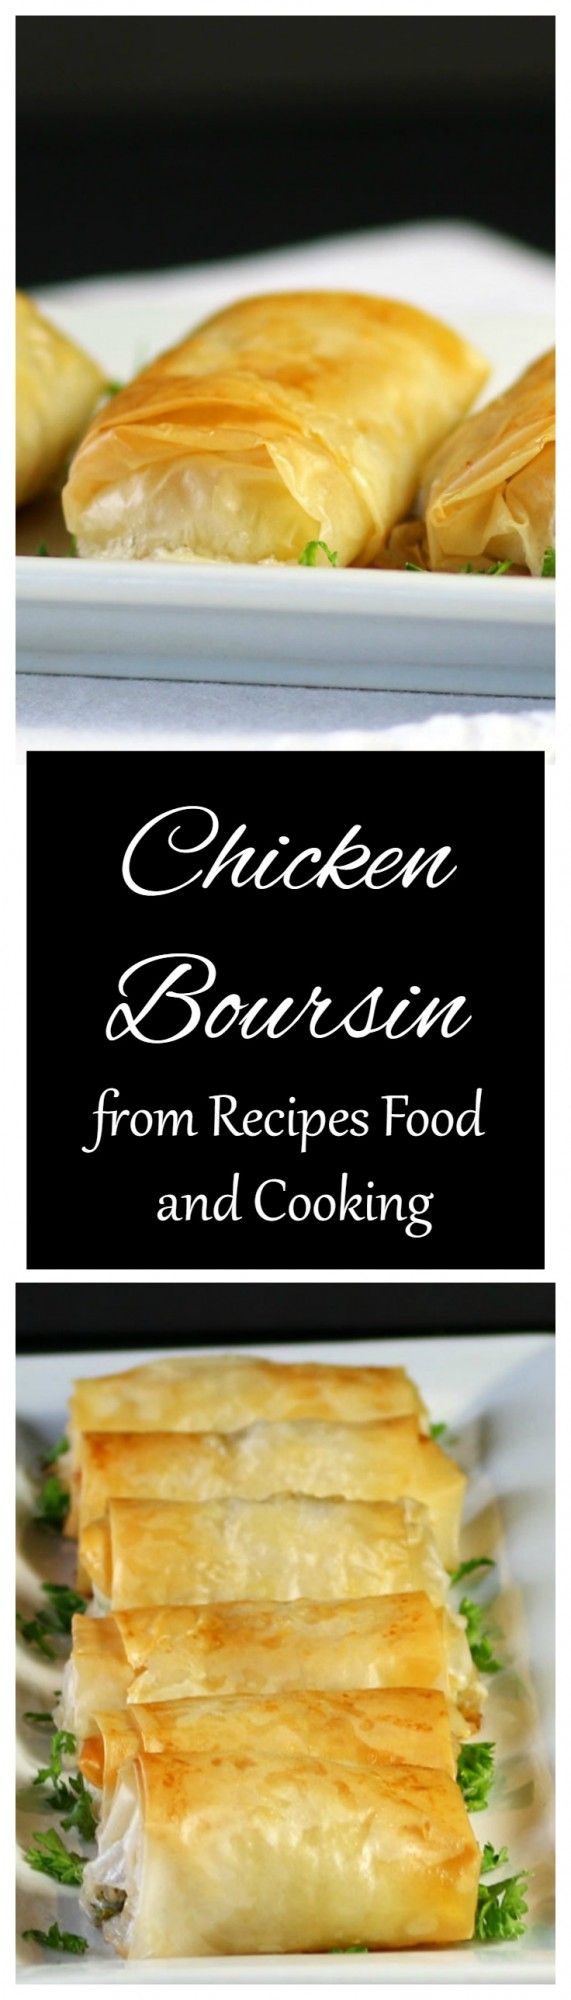 Chicken Boursin - The perfect appetizer, chicken breast pieces with homemade boursin wrapped in a flaky filo wrapping. #SundaySupper - Recipes, Food and Cooking